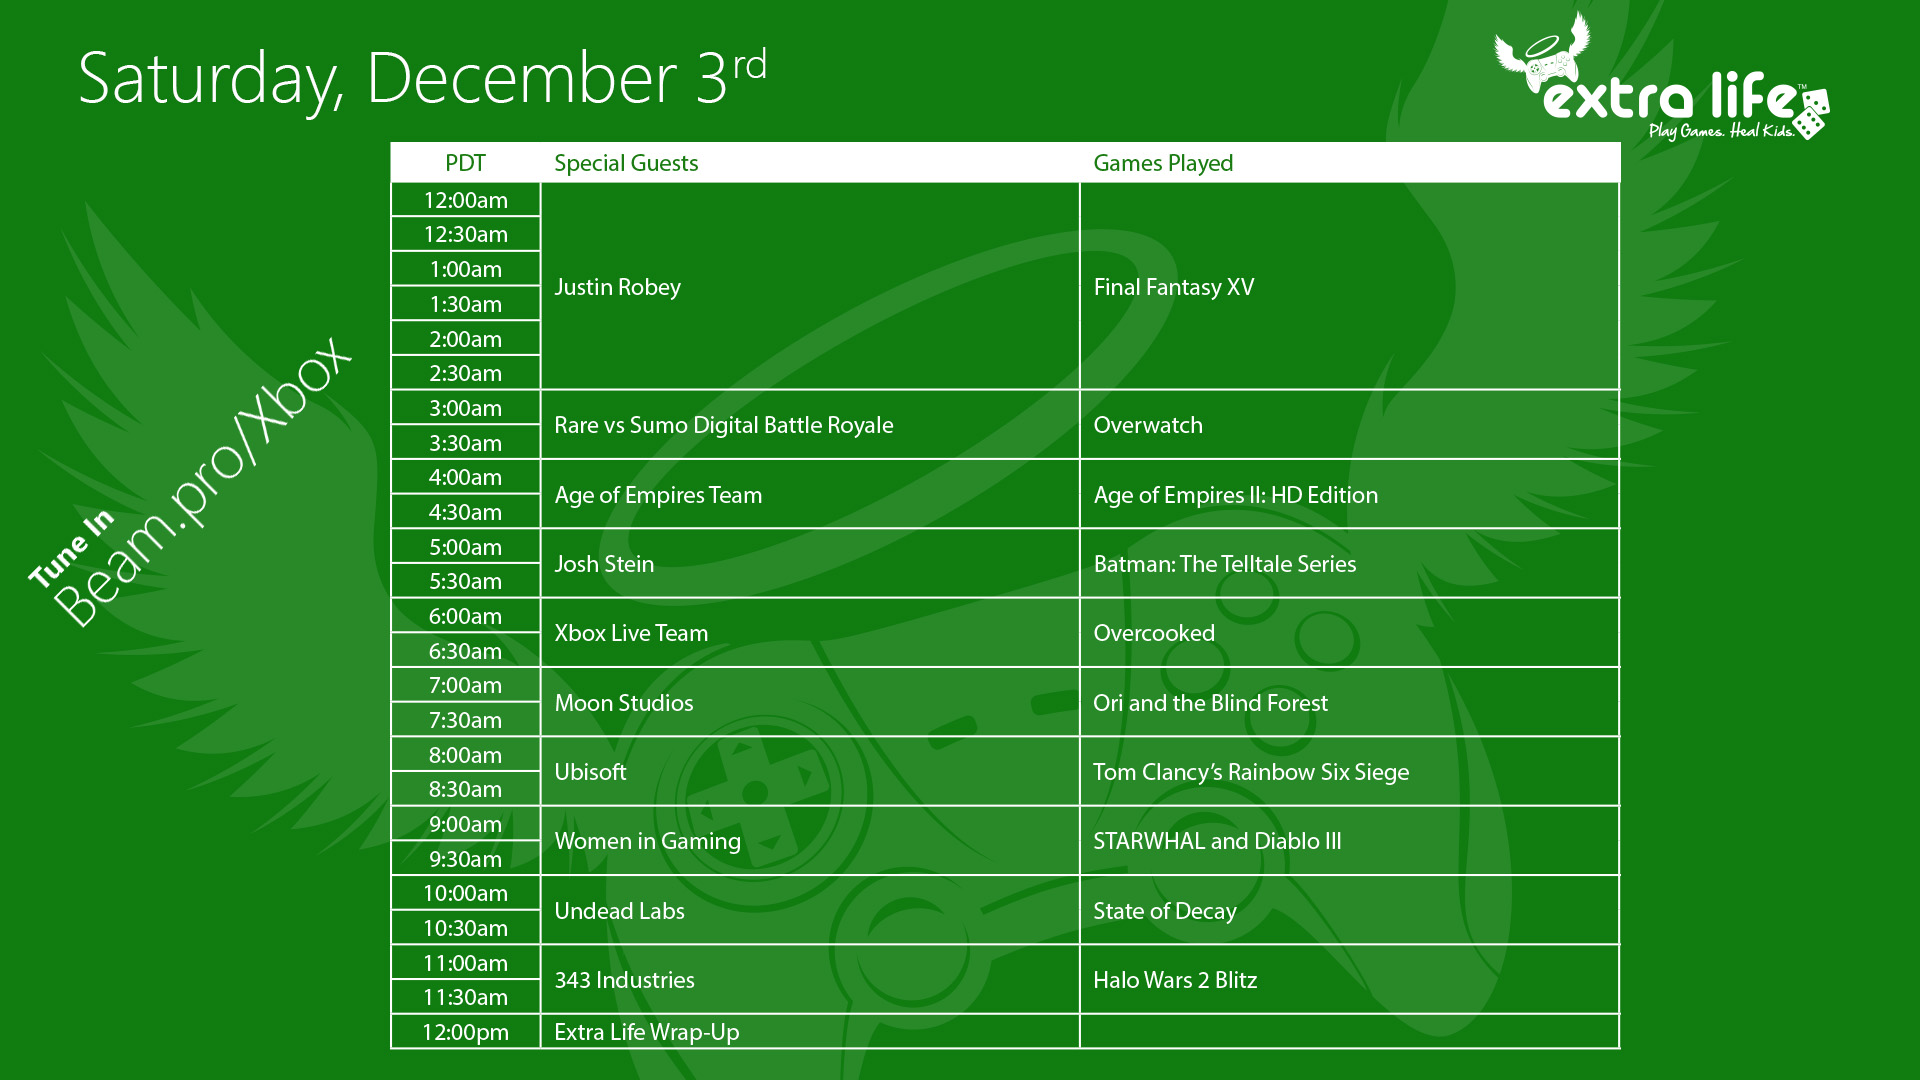 schedule_dec3_shortened_version2